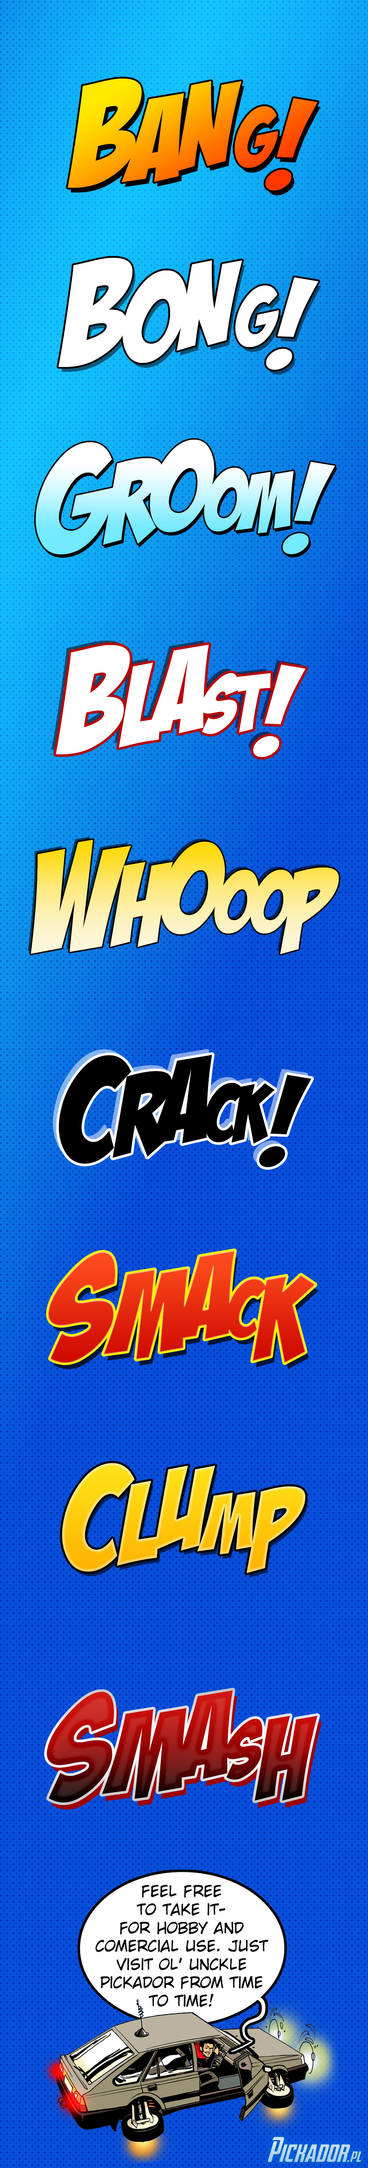 Comics onomatopoeia Photoshop styles